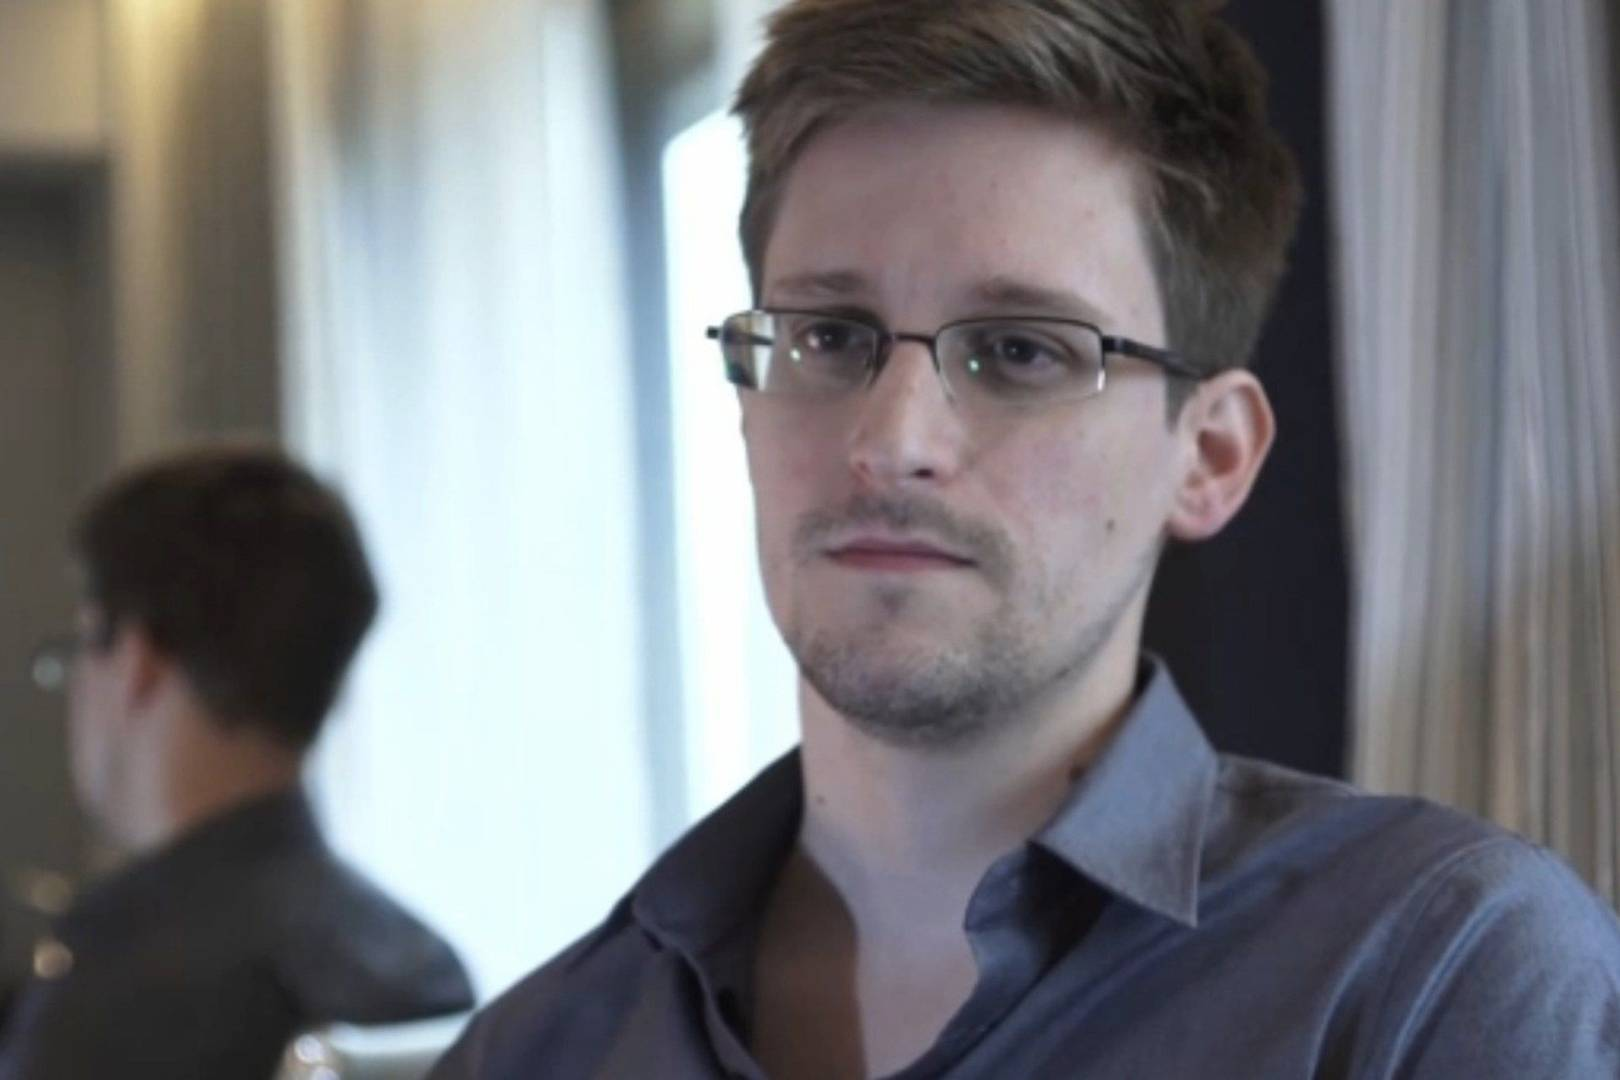 Edward Snowden will soon sign a petition for asylum 16.07.2013 2